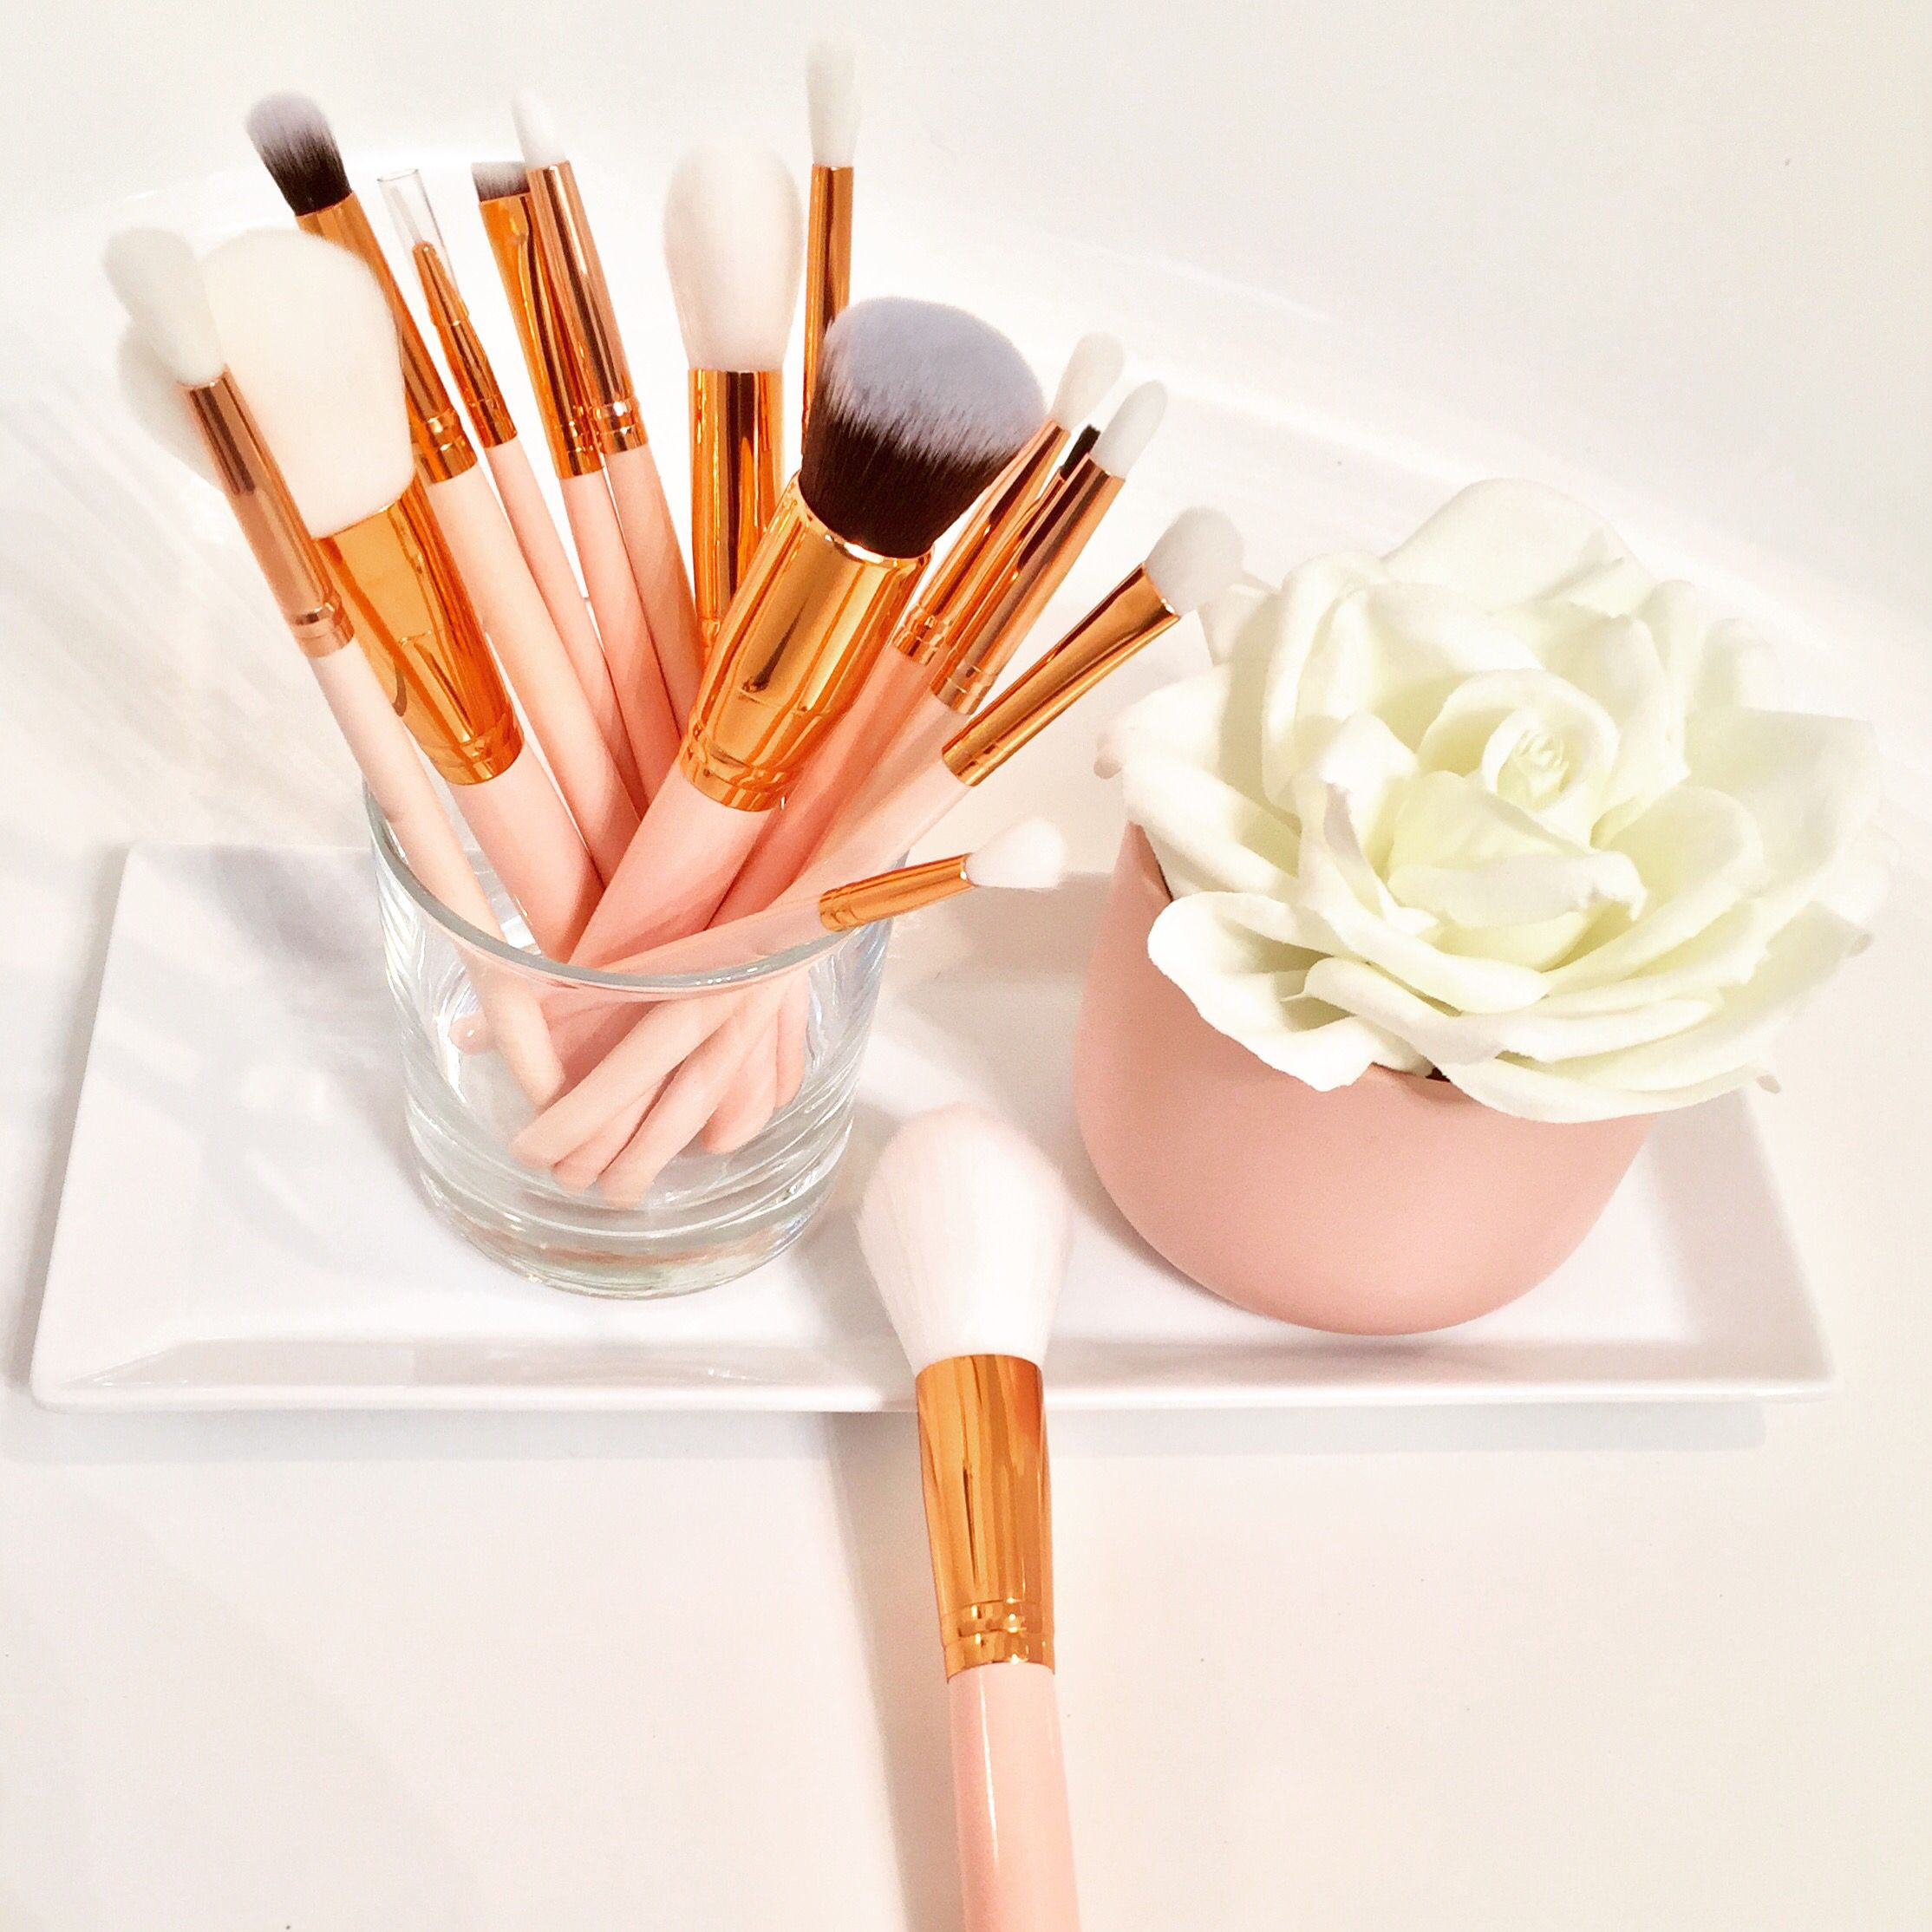 SLMissGlam Beauty Makeup Brushes Review Makeup brushes